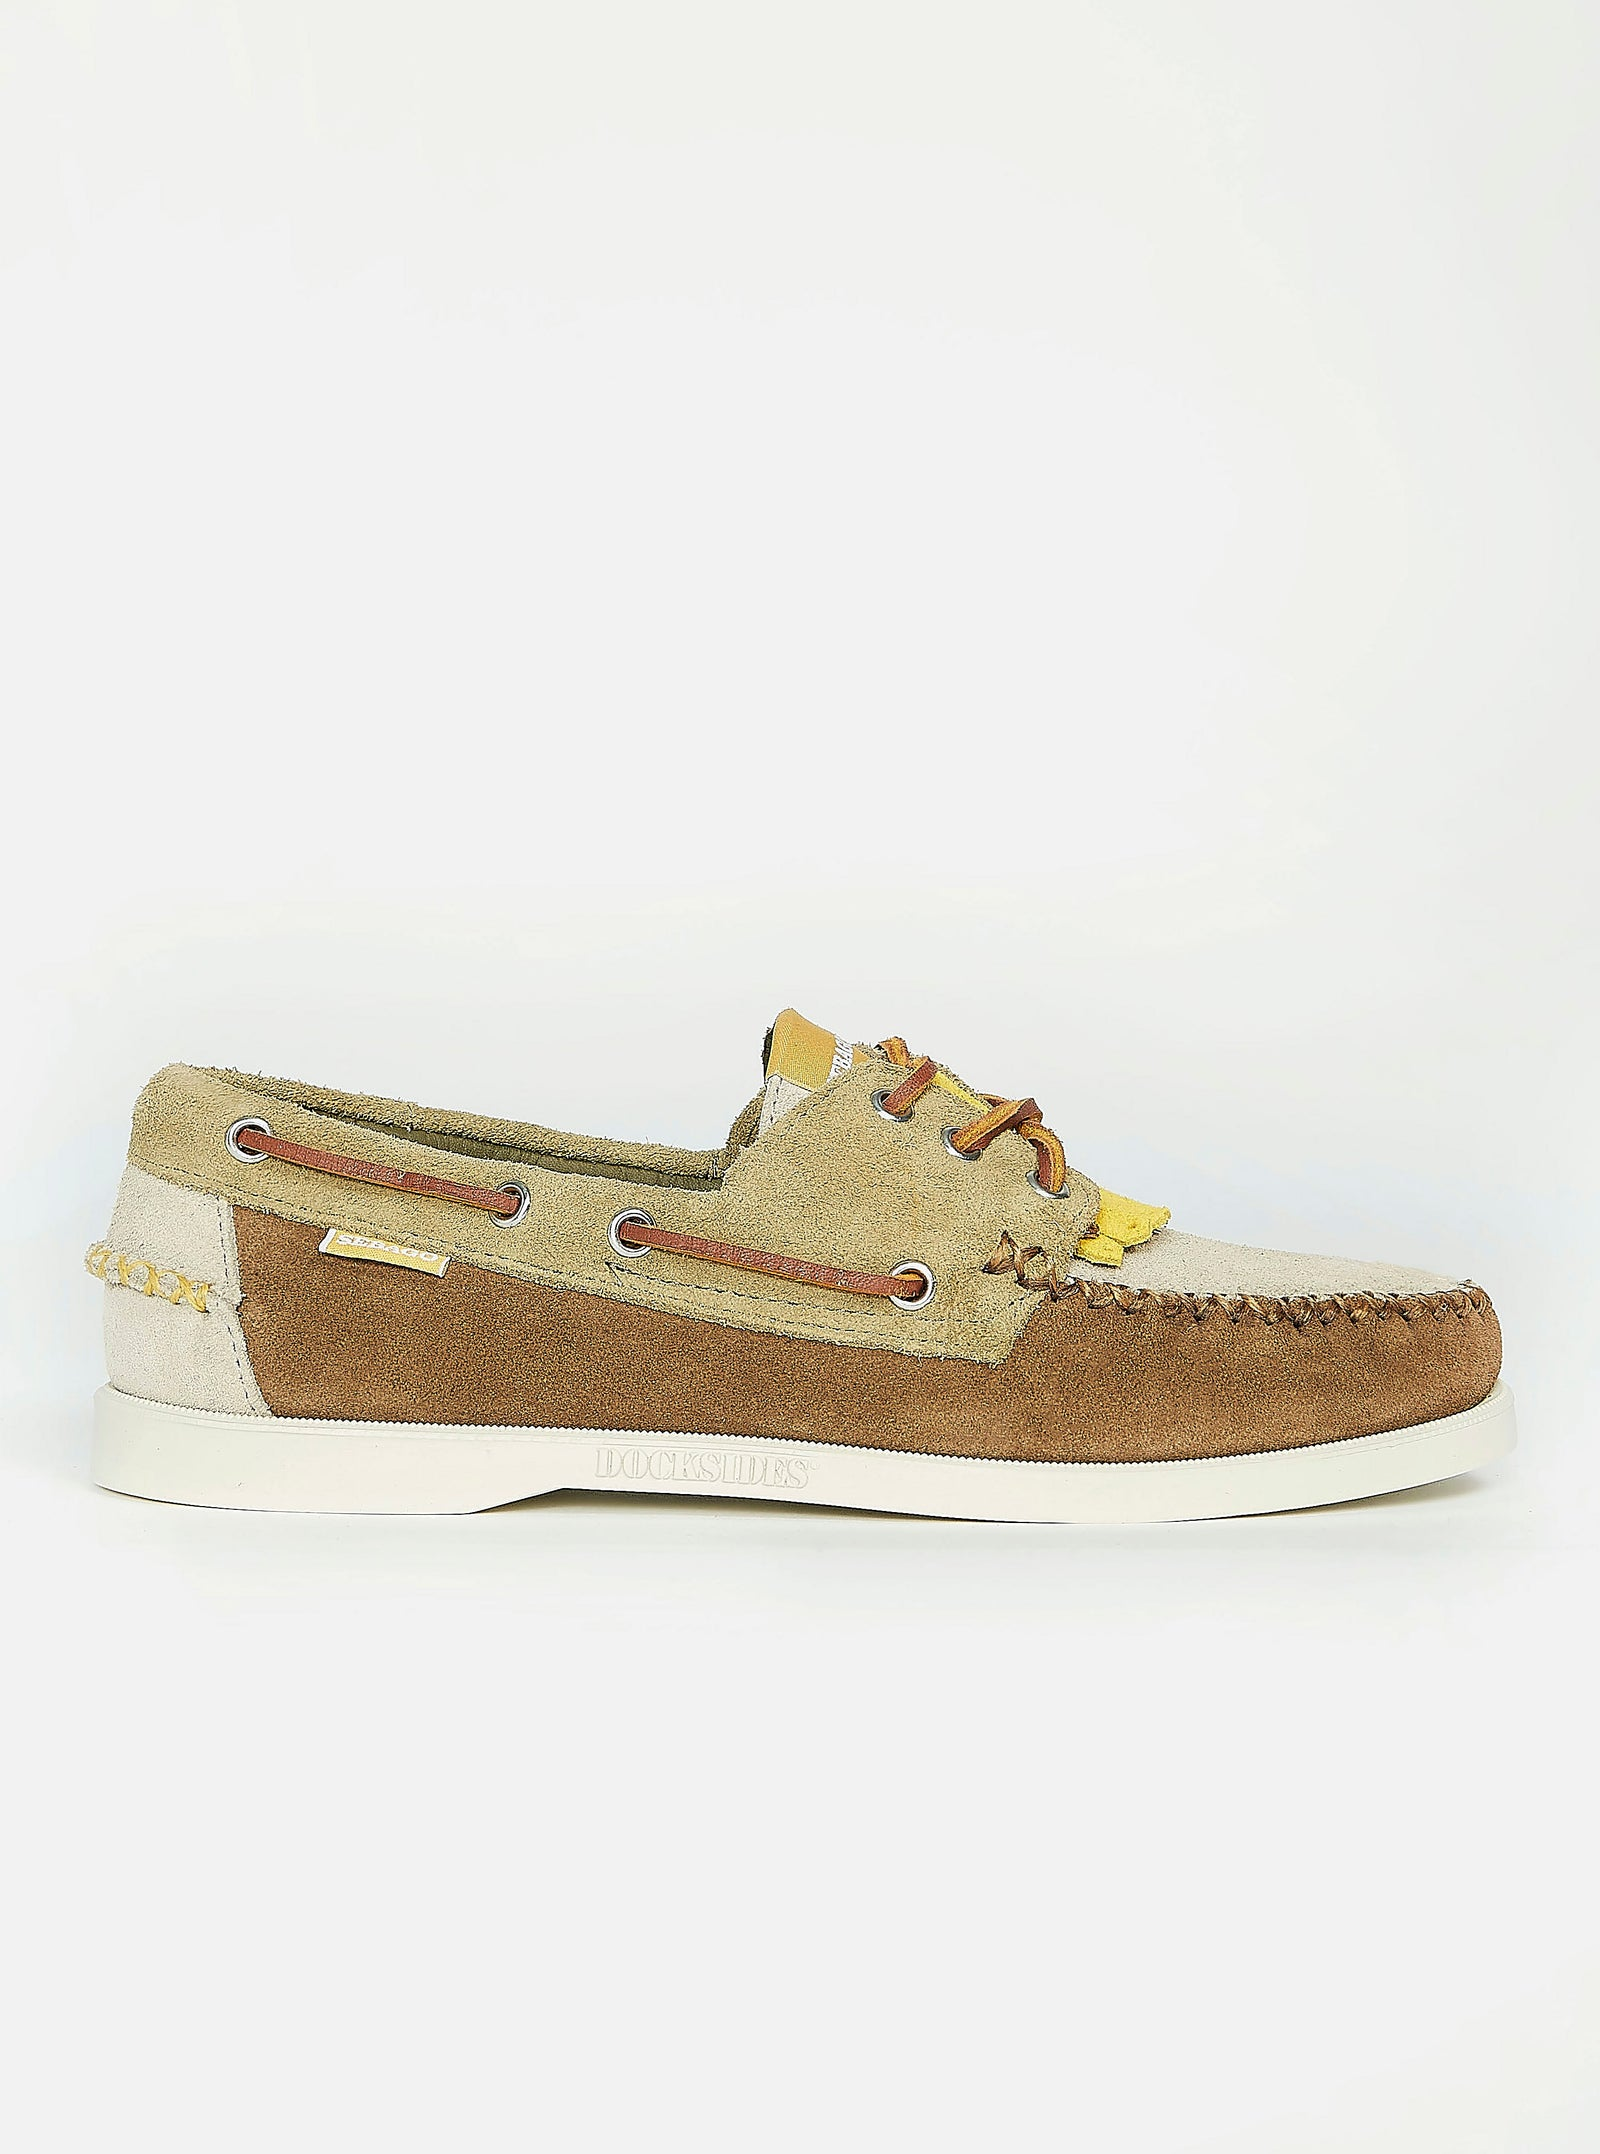 Sebago x Universal Works Portland Multi-Tone In Mix Suede